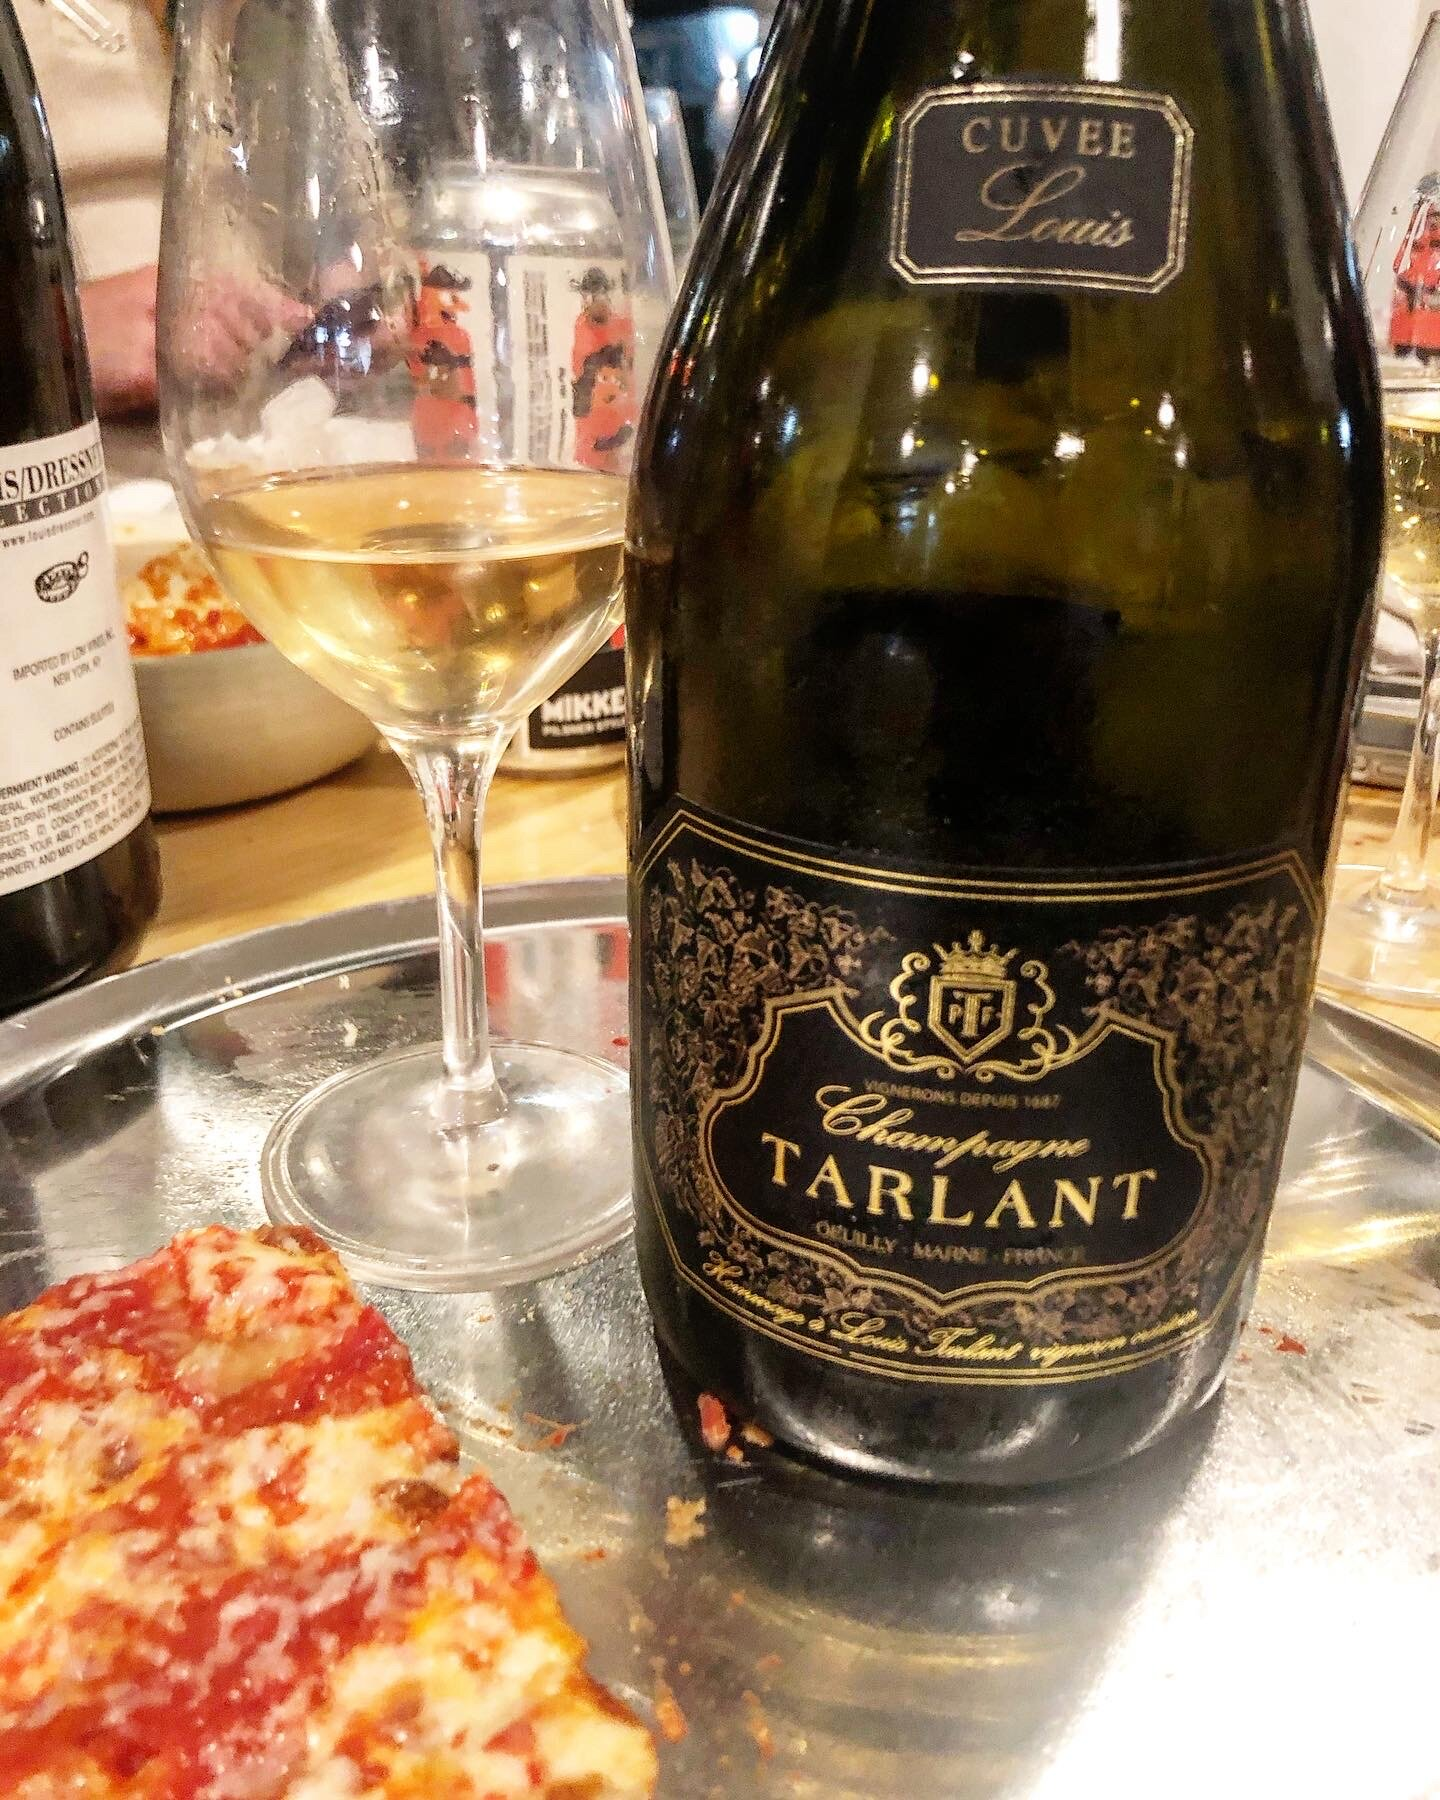 The gift of Tarlant from Monsieur Tarlant.